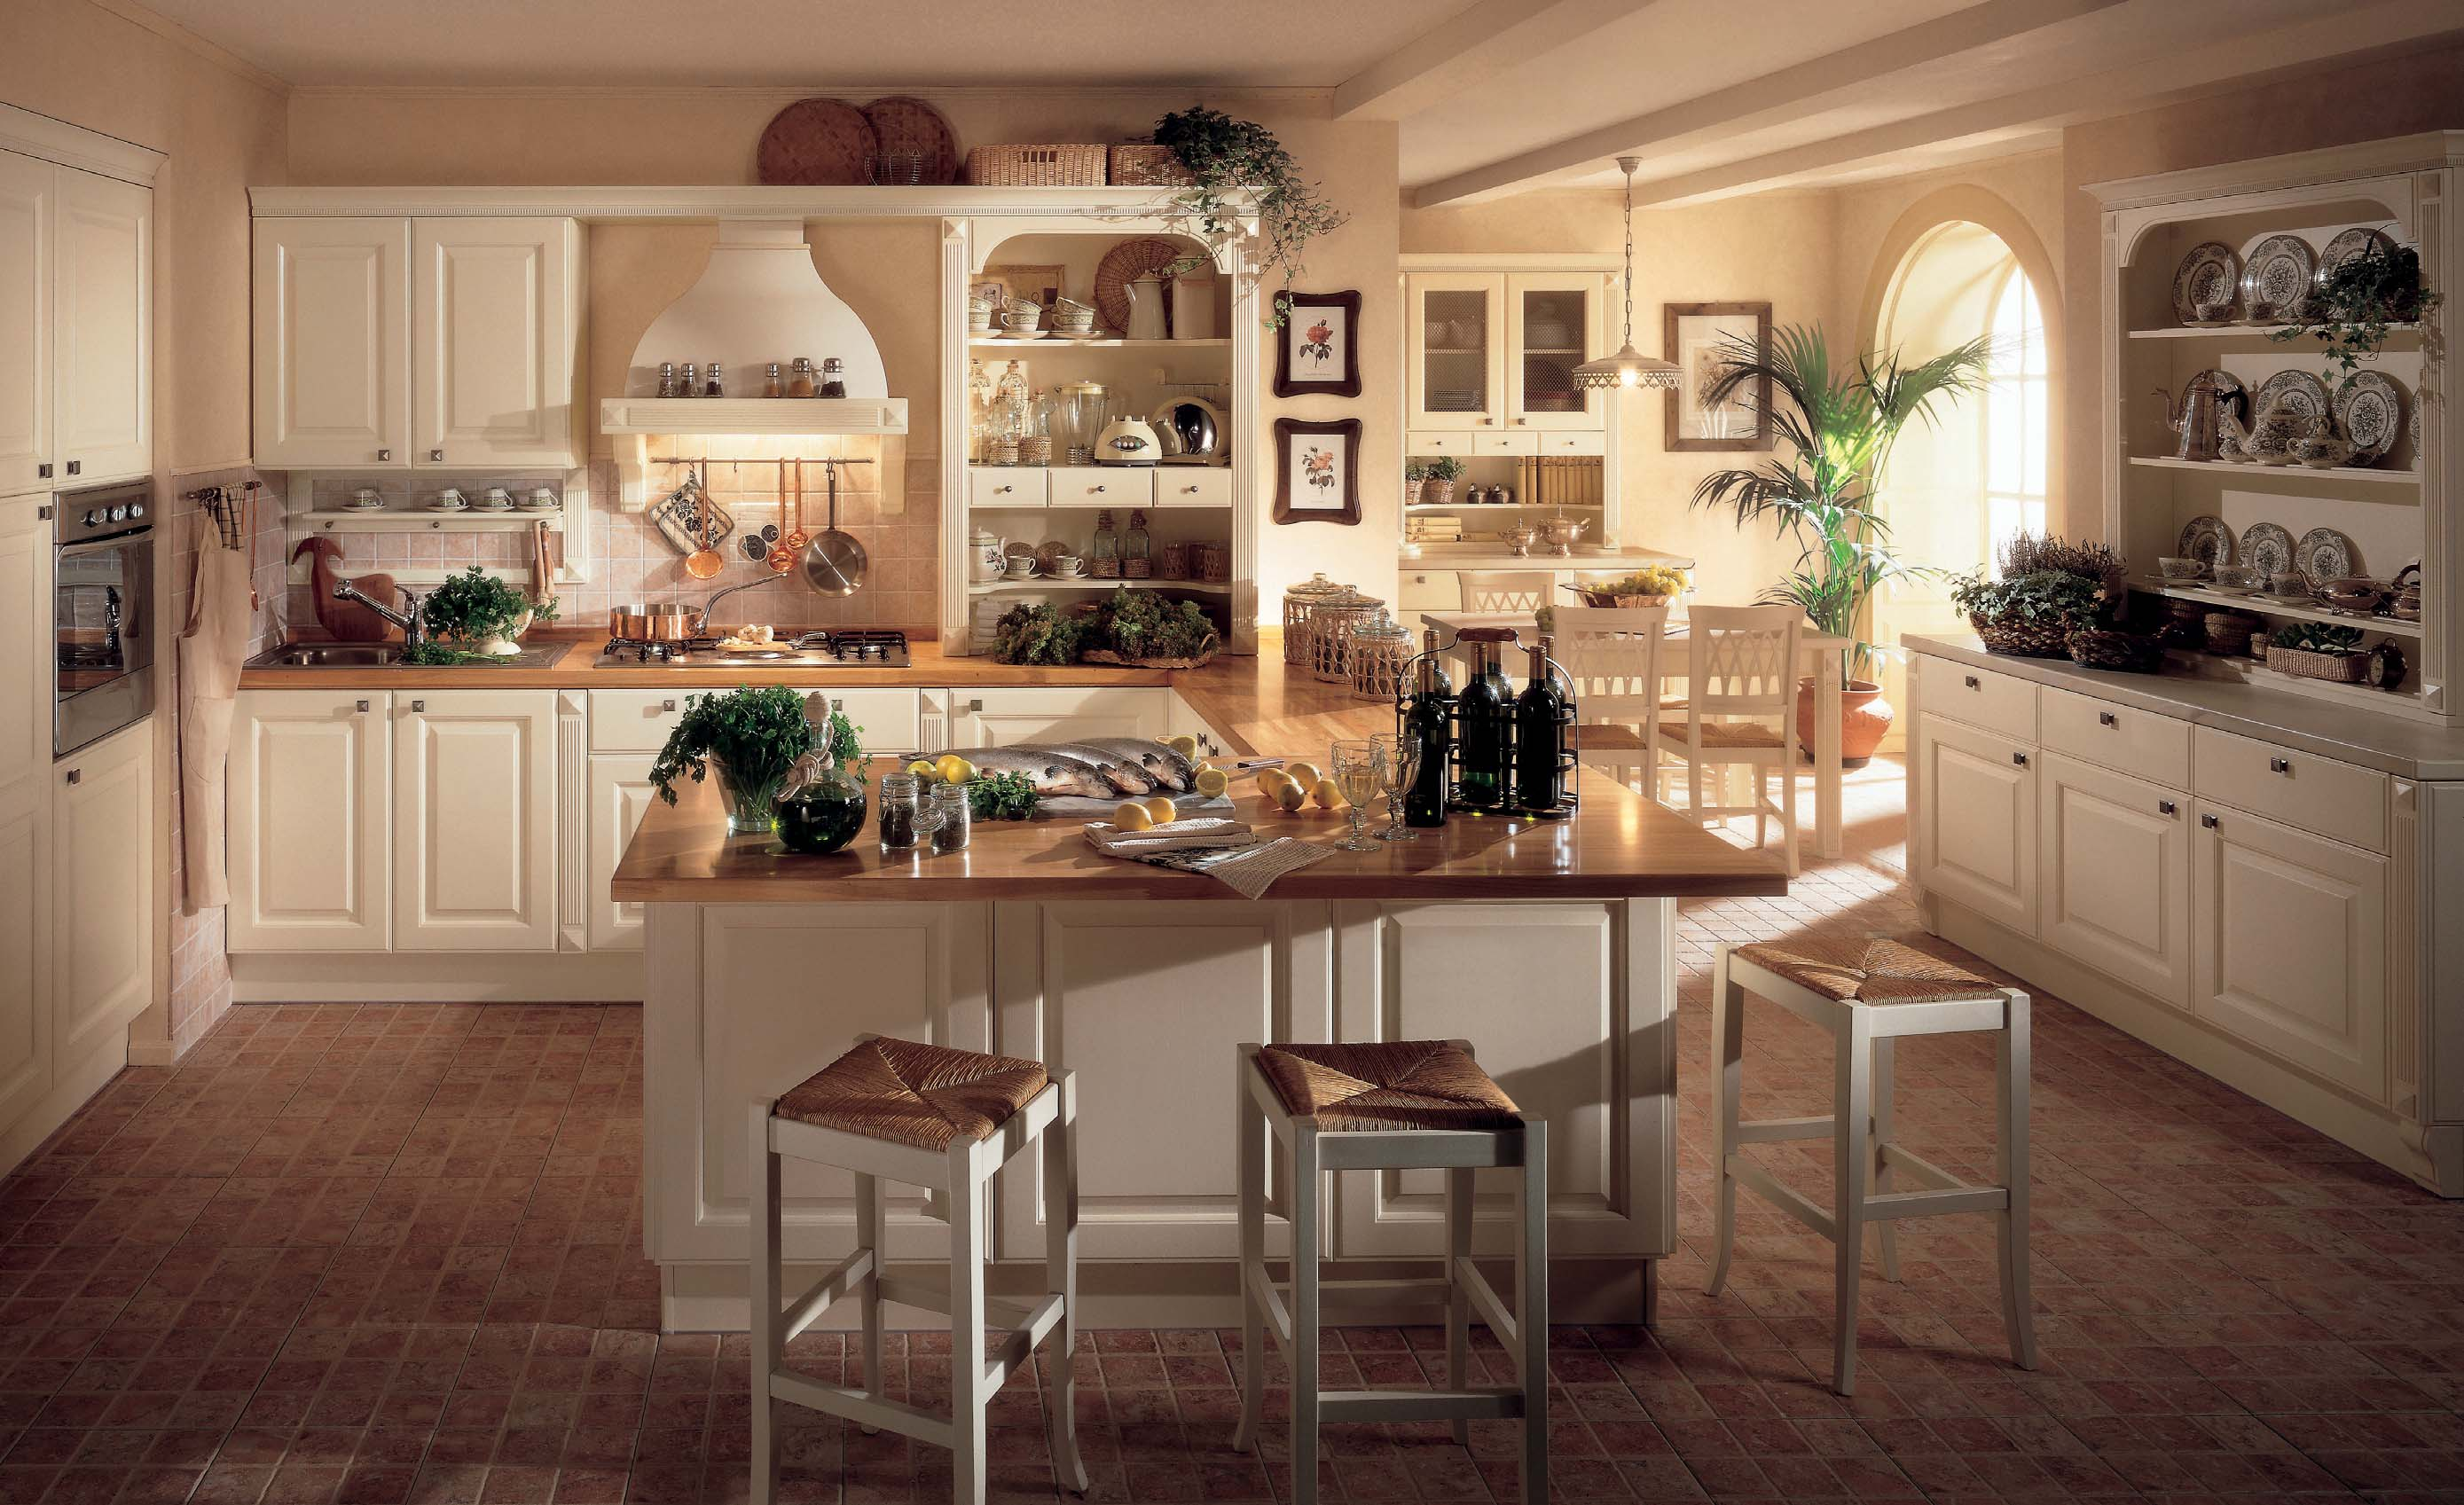 Athena classic kitchen interior inspiration for Classic home interior decoration